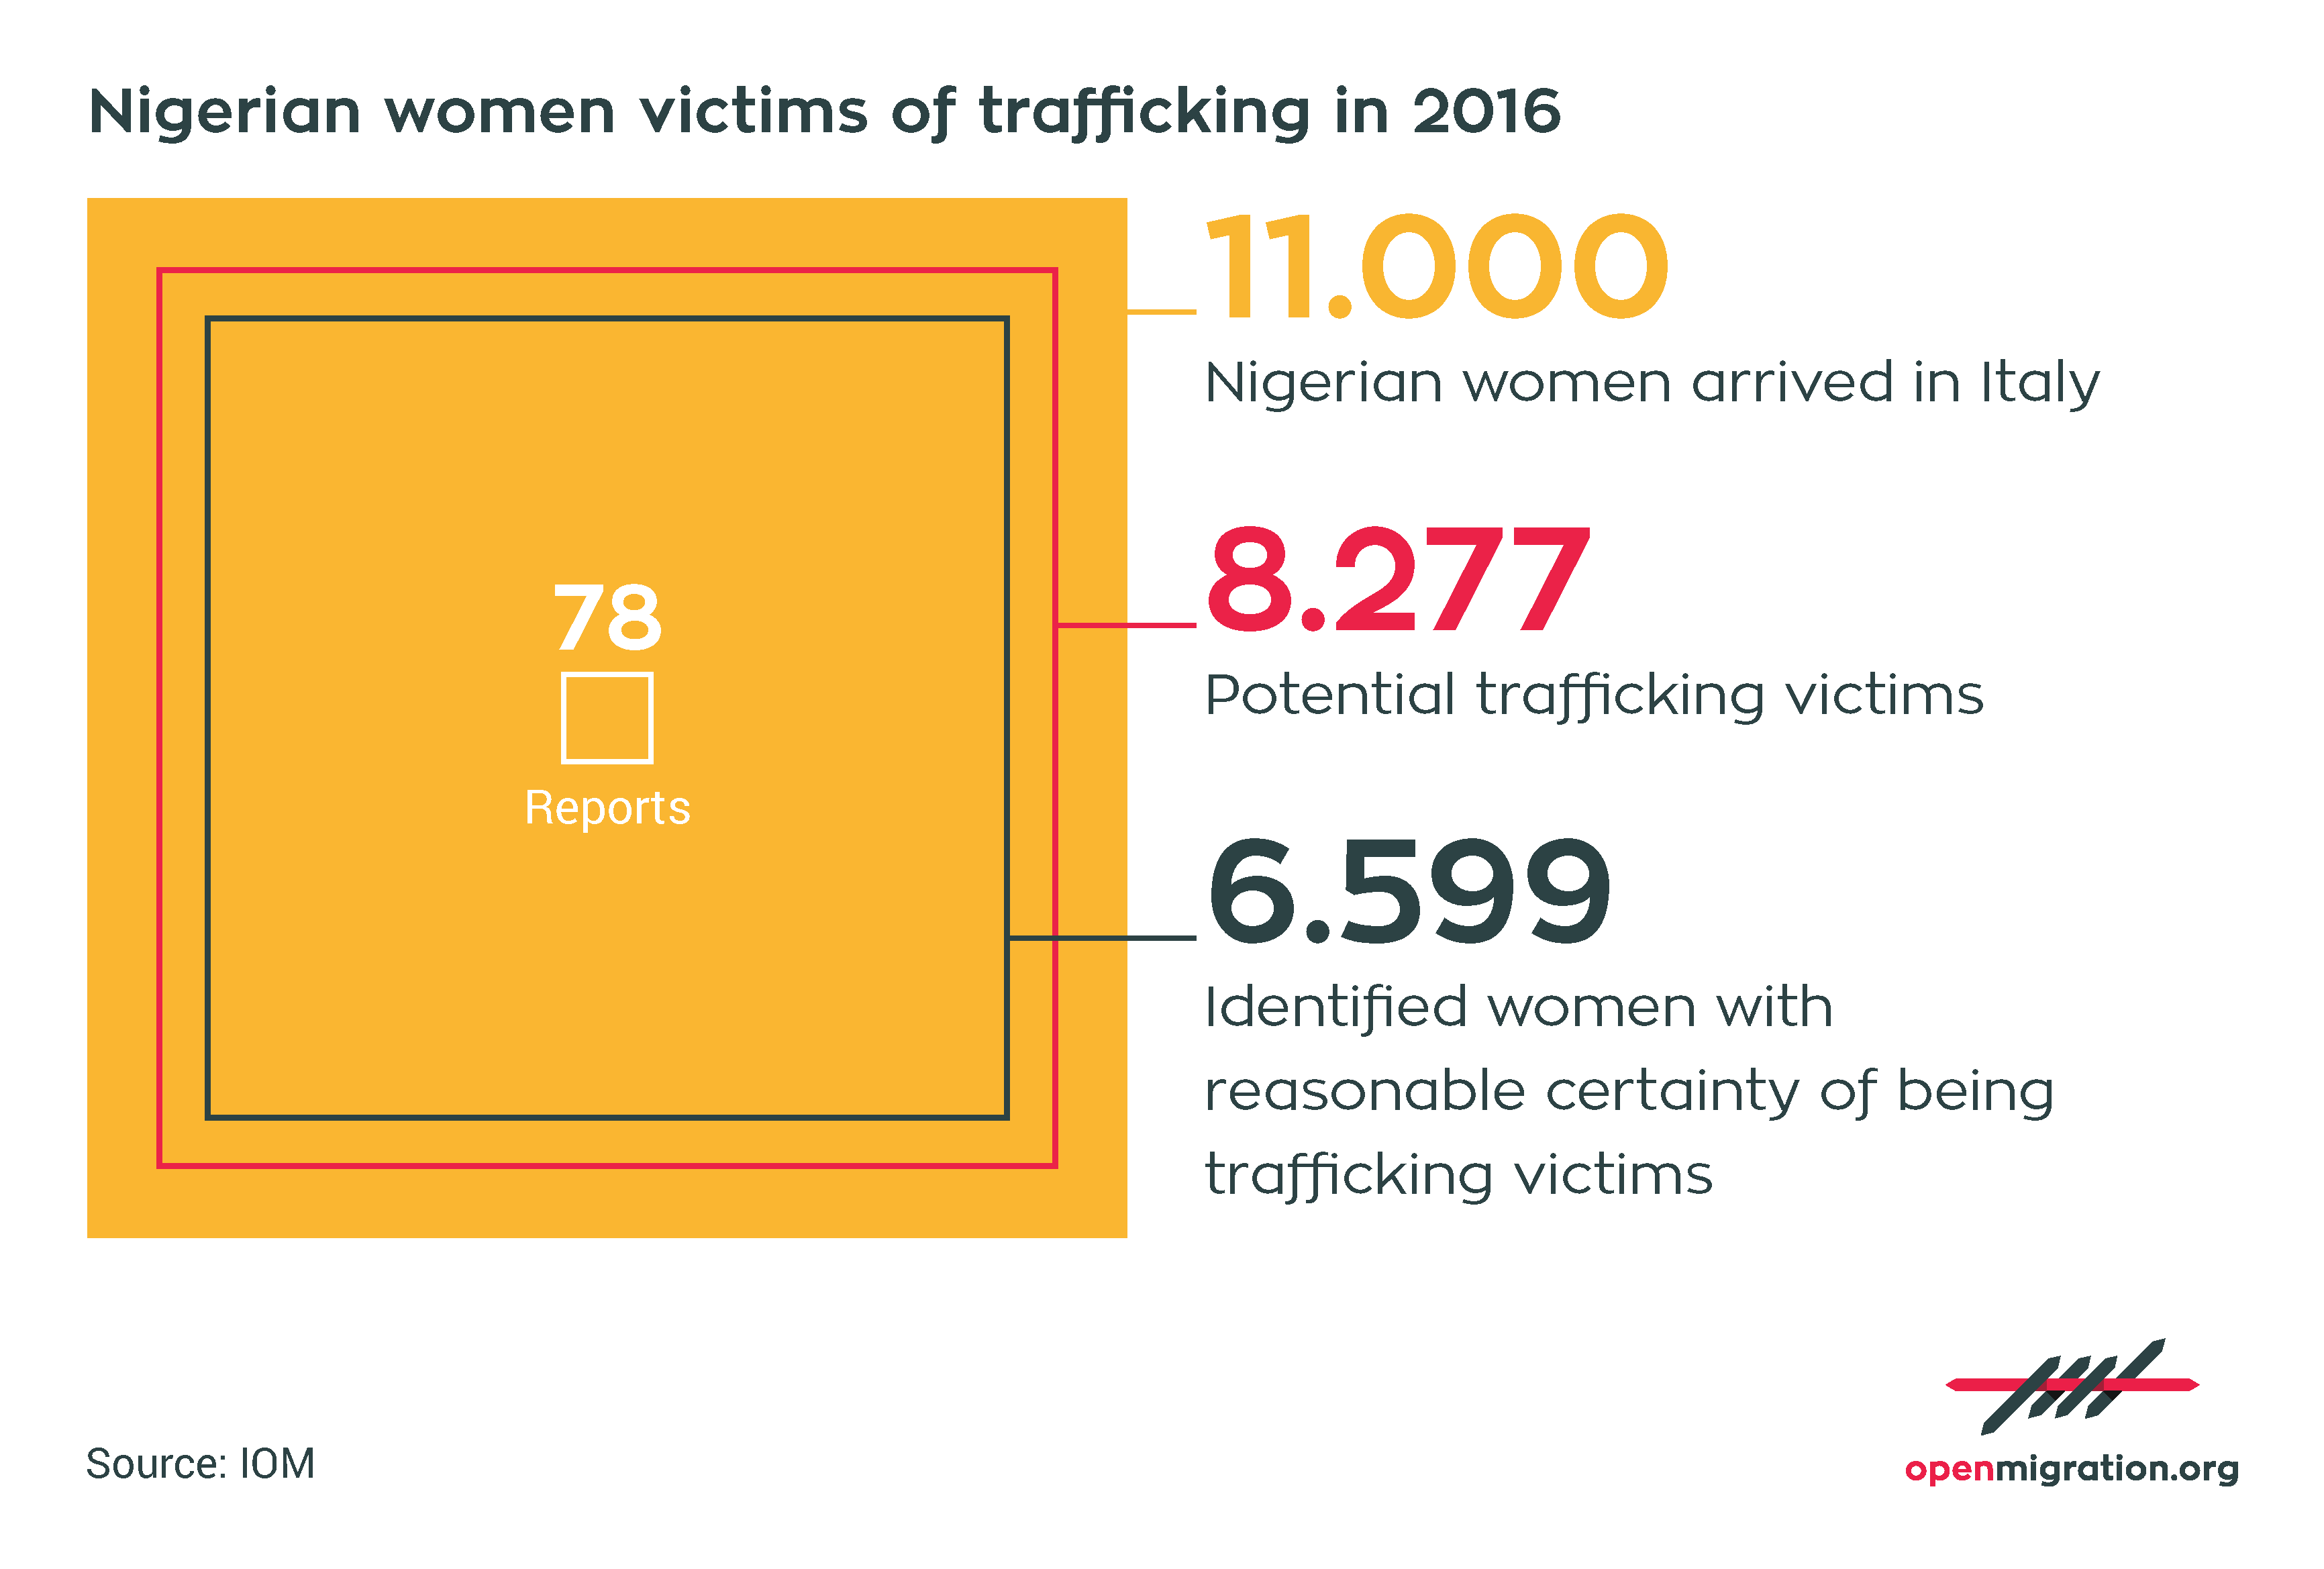 Nigerian women victims of trafficking, 2016